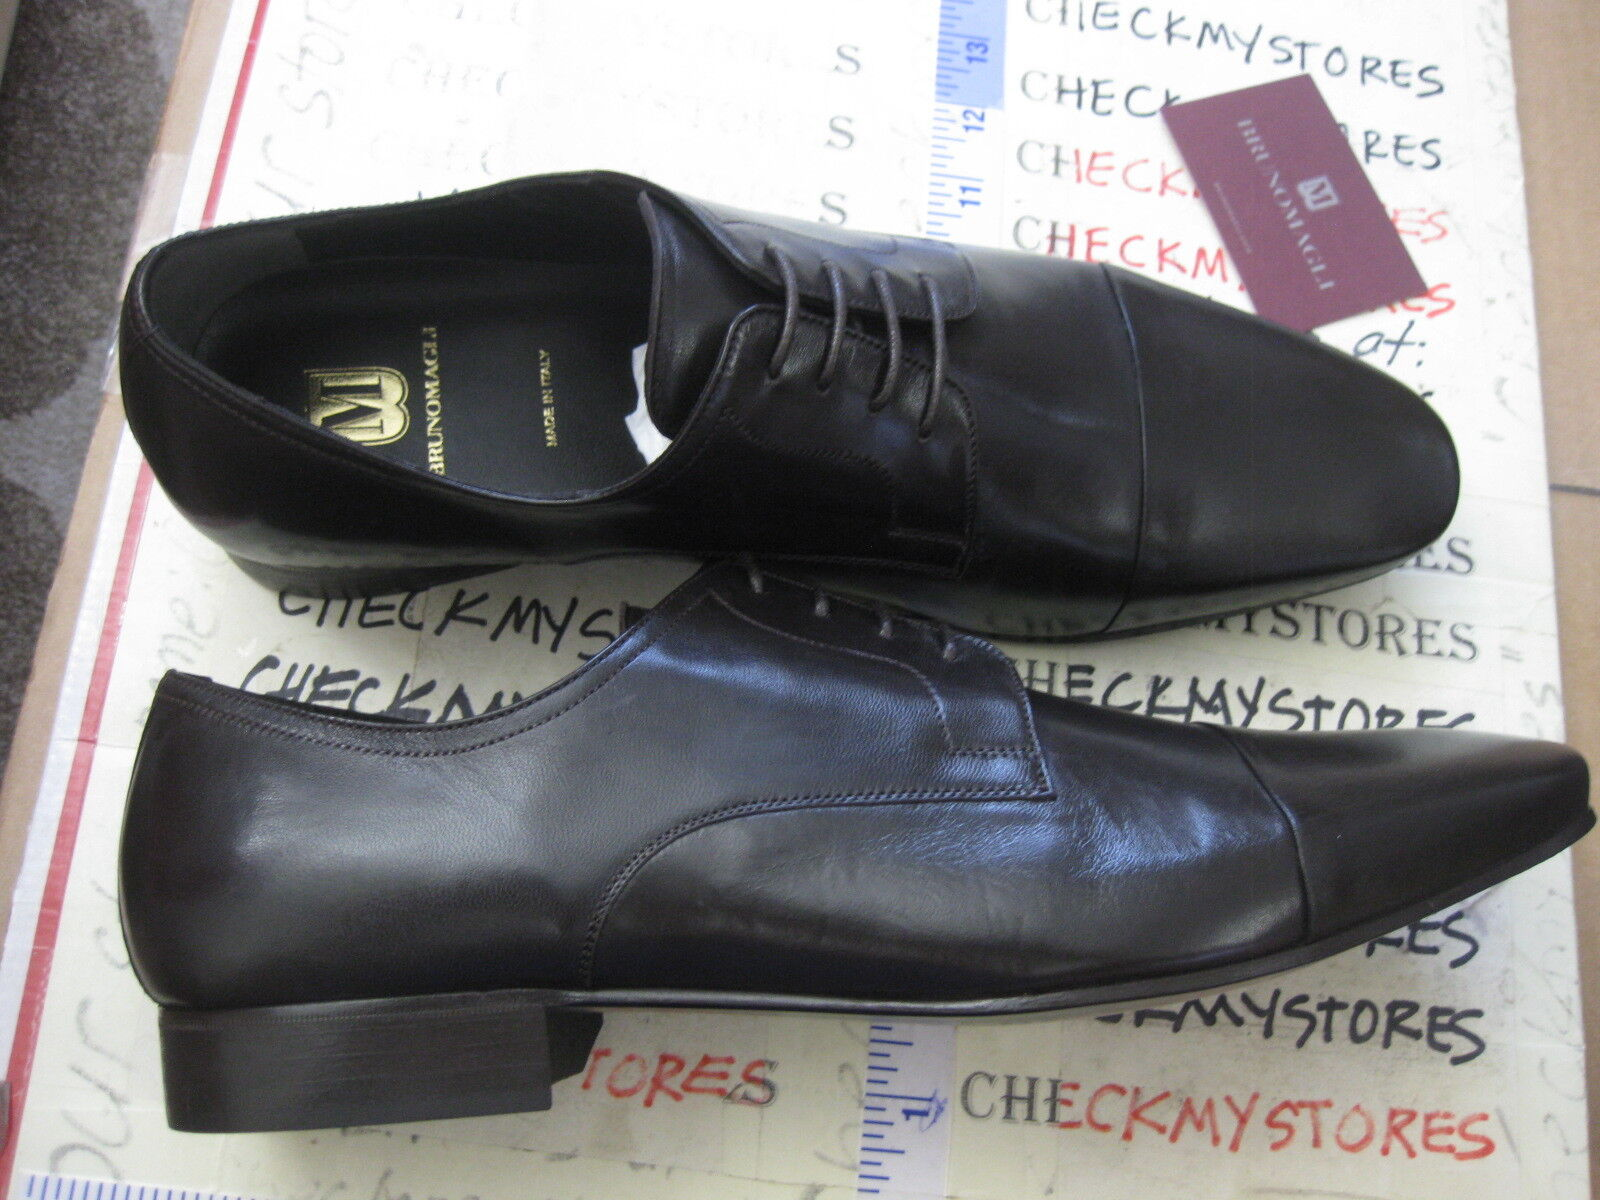 NEW  450 450 450 Bruno Magli Martico ITALIAN LEATHER OXFORDS MADE IN ITALY CHOOSE SIZE 067255